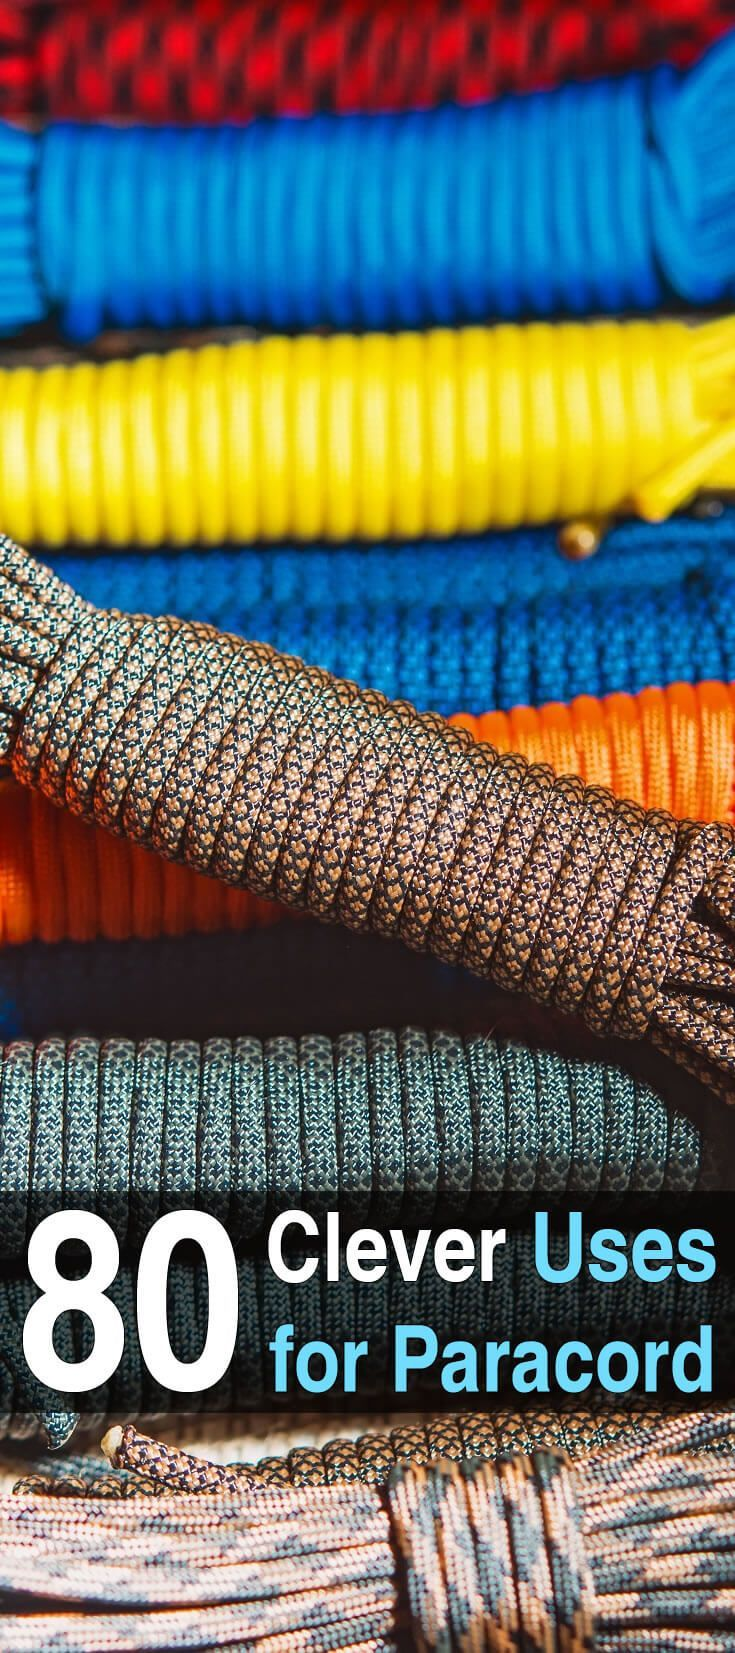 80 Clever Uses for Paracord. Paracord is one of the most versatile survival tools. Originally it was used for parachutes, but people quickly found many other uses for it.